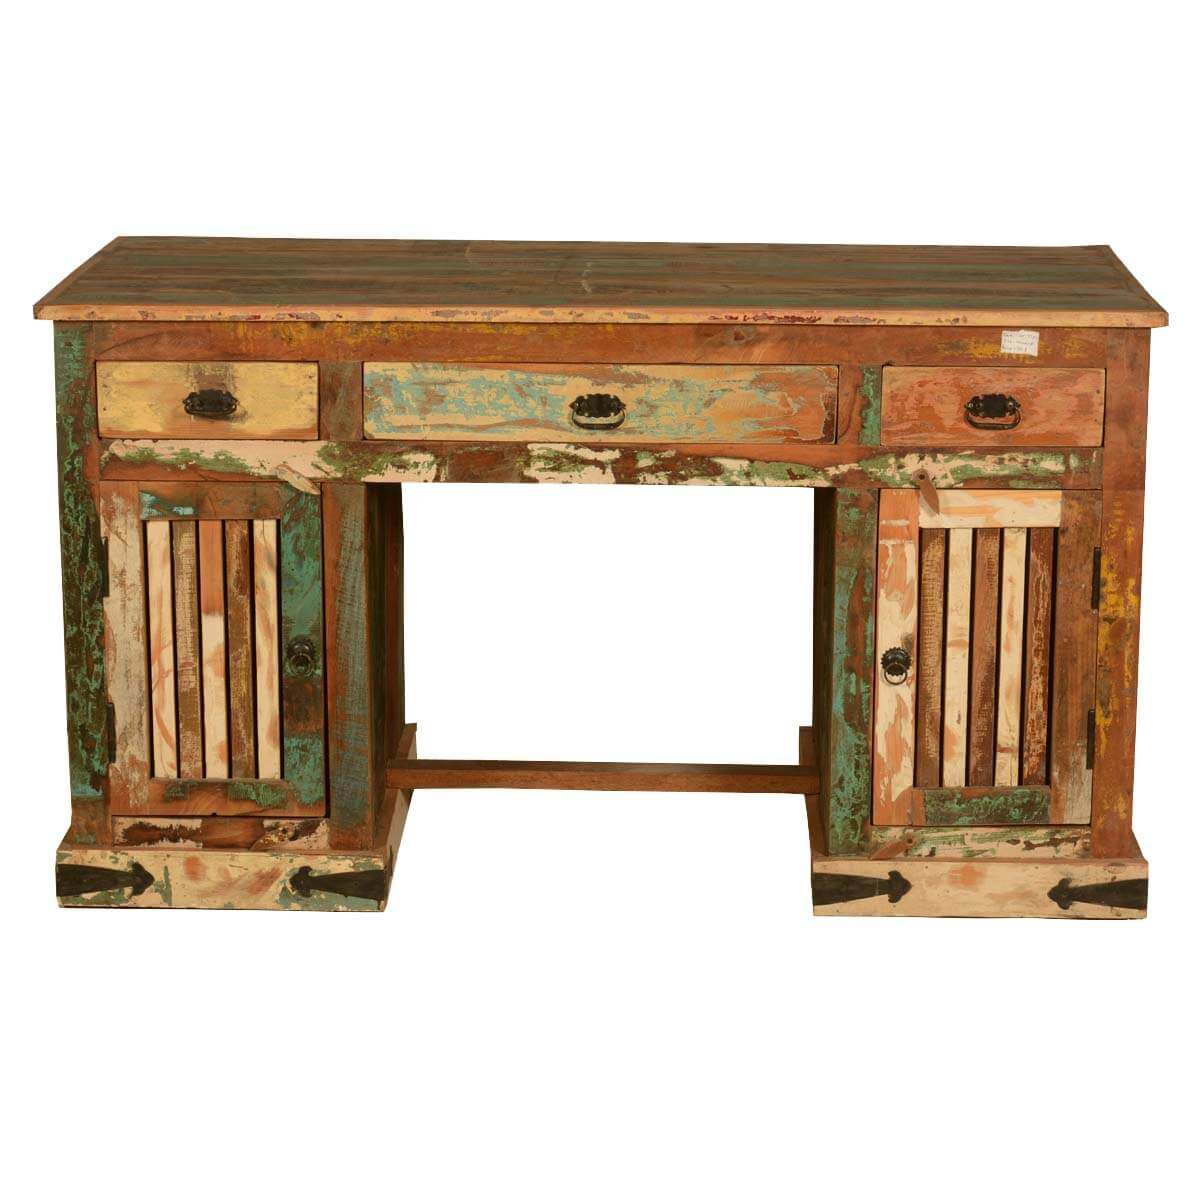 Reclaimed Wood Rustic Home Office: Gothic Rustic Solid Reclaimed Wood Office Desk